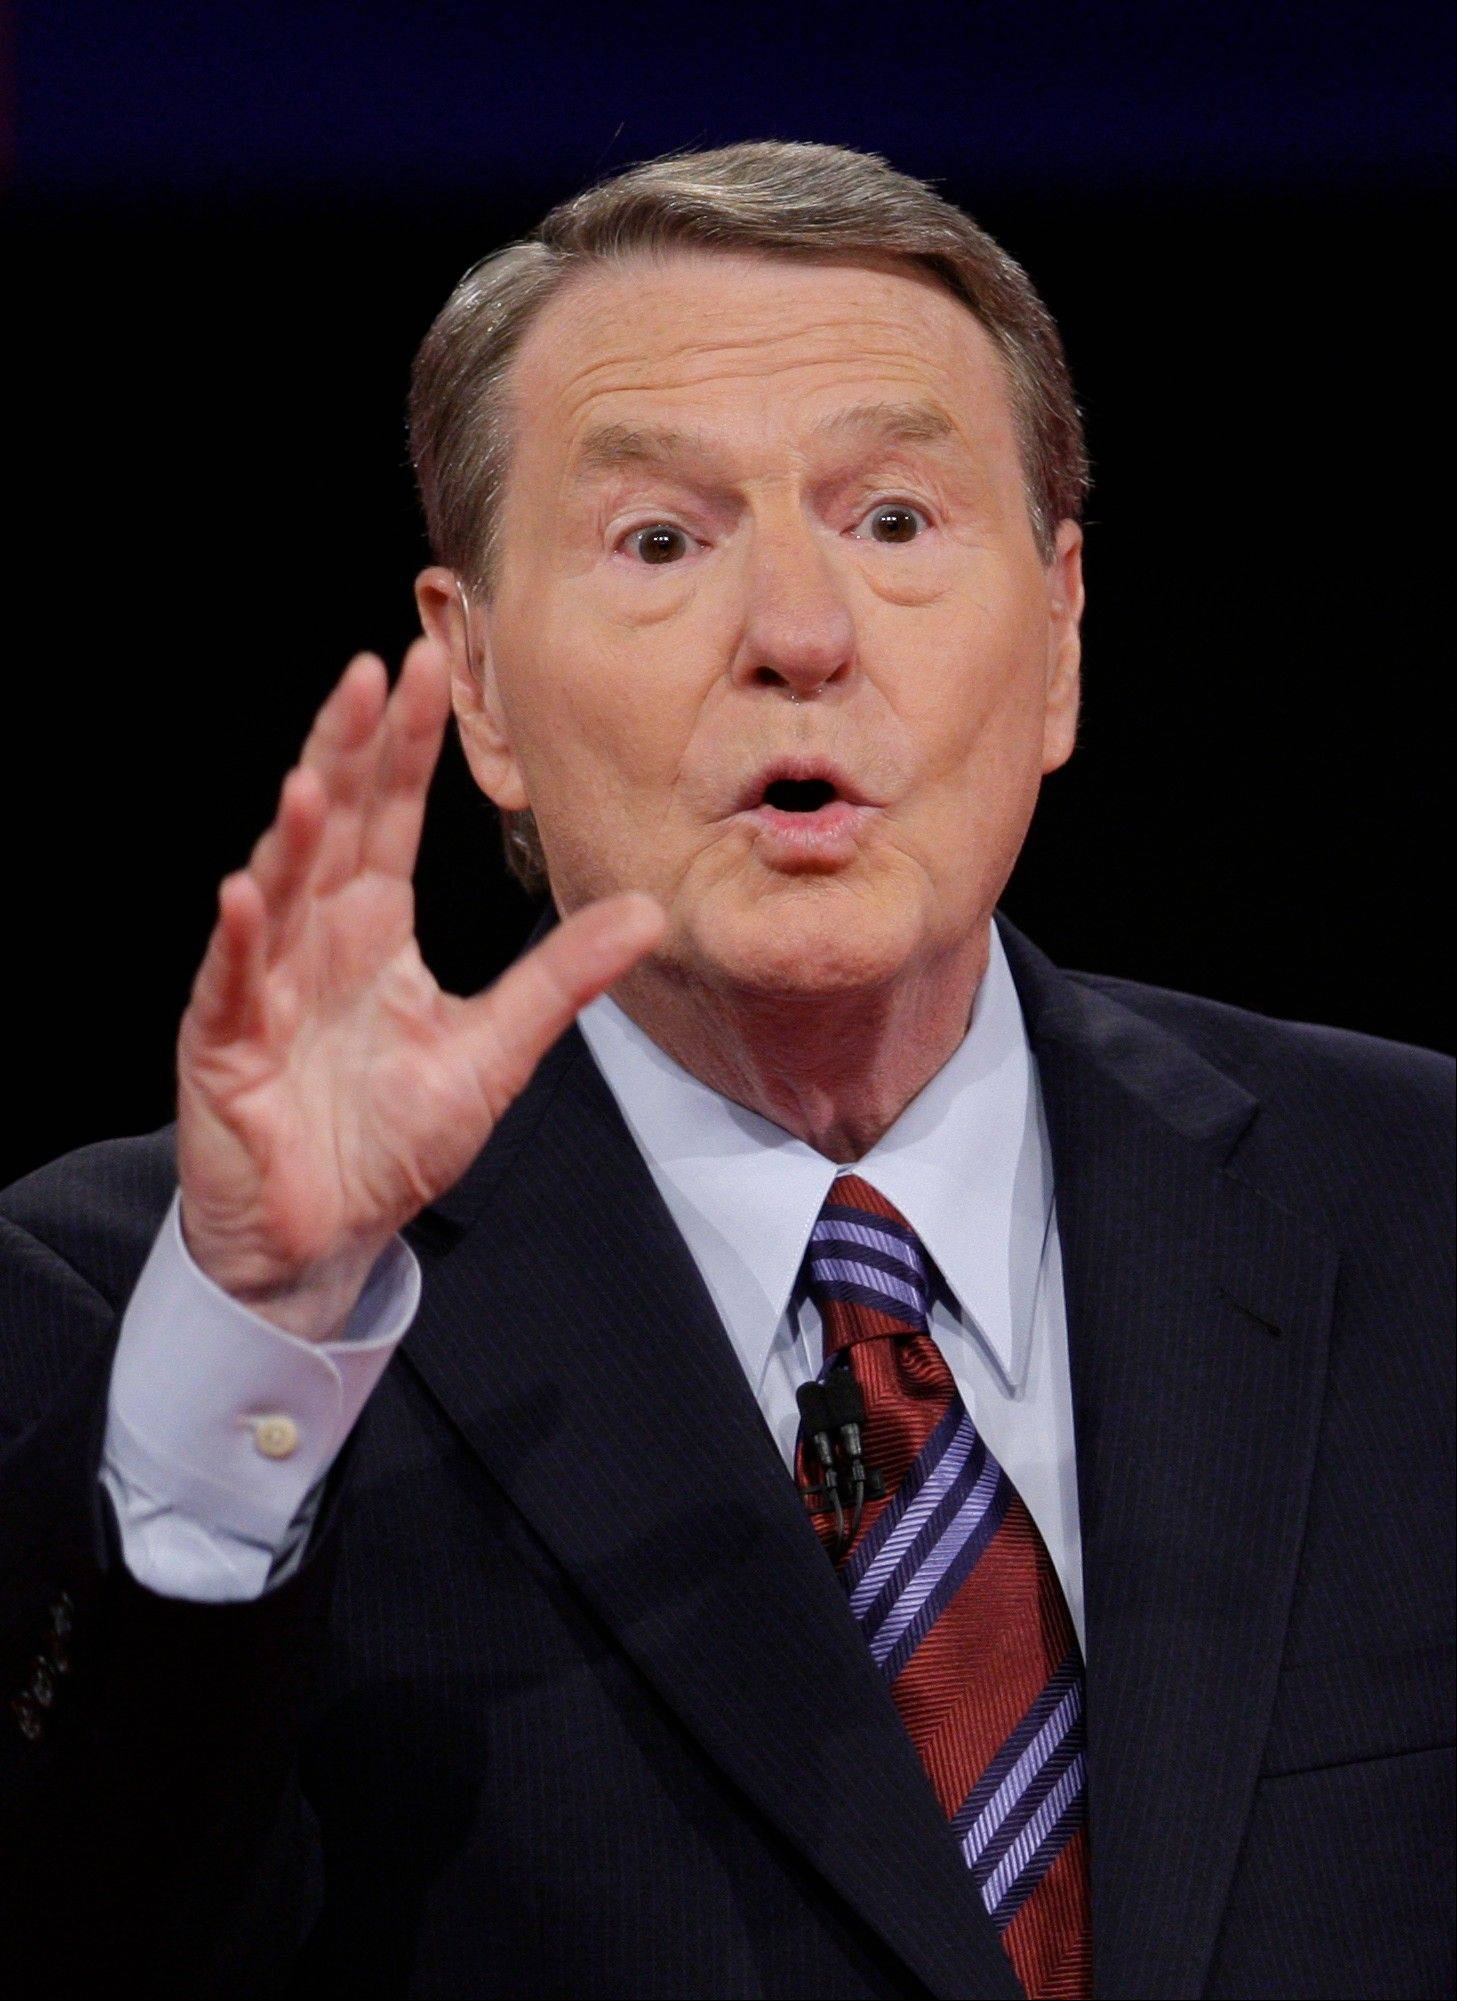 Jim Lehrer, who moderated the first presidential debate, was criticized for not keeping the two candidates on topic and following the rules of the debate.